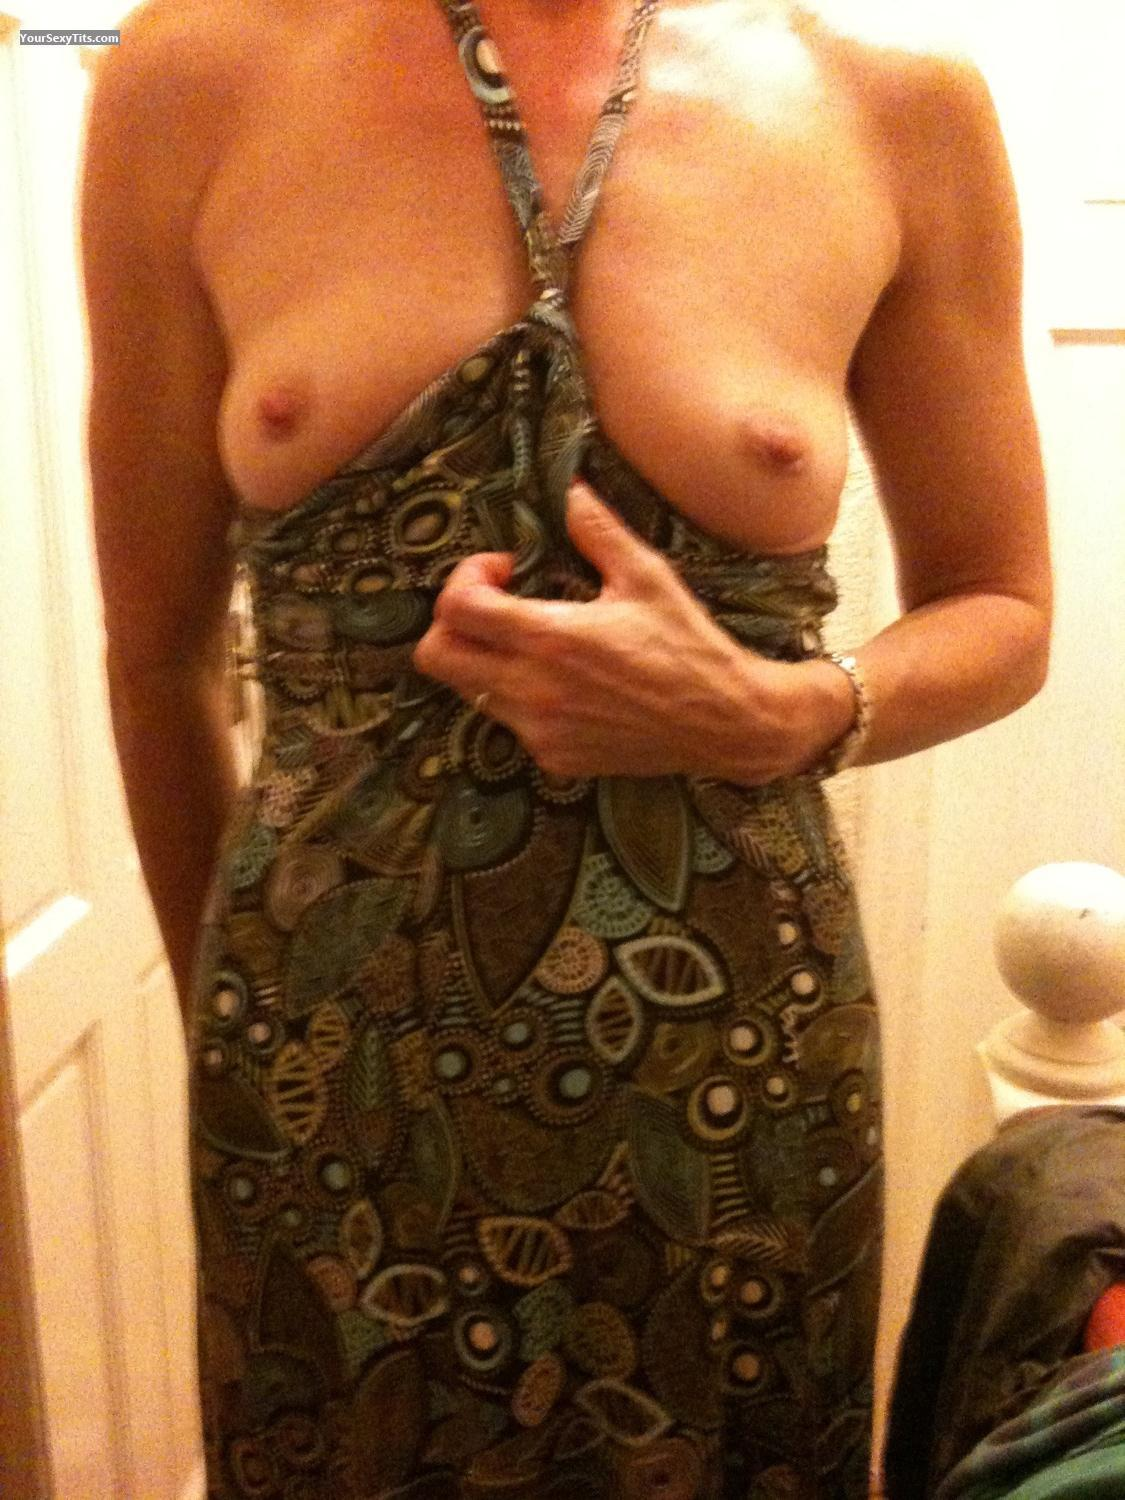 Tit Flash: Small Tits By IPhone - Butt_babe from United Kingdom